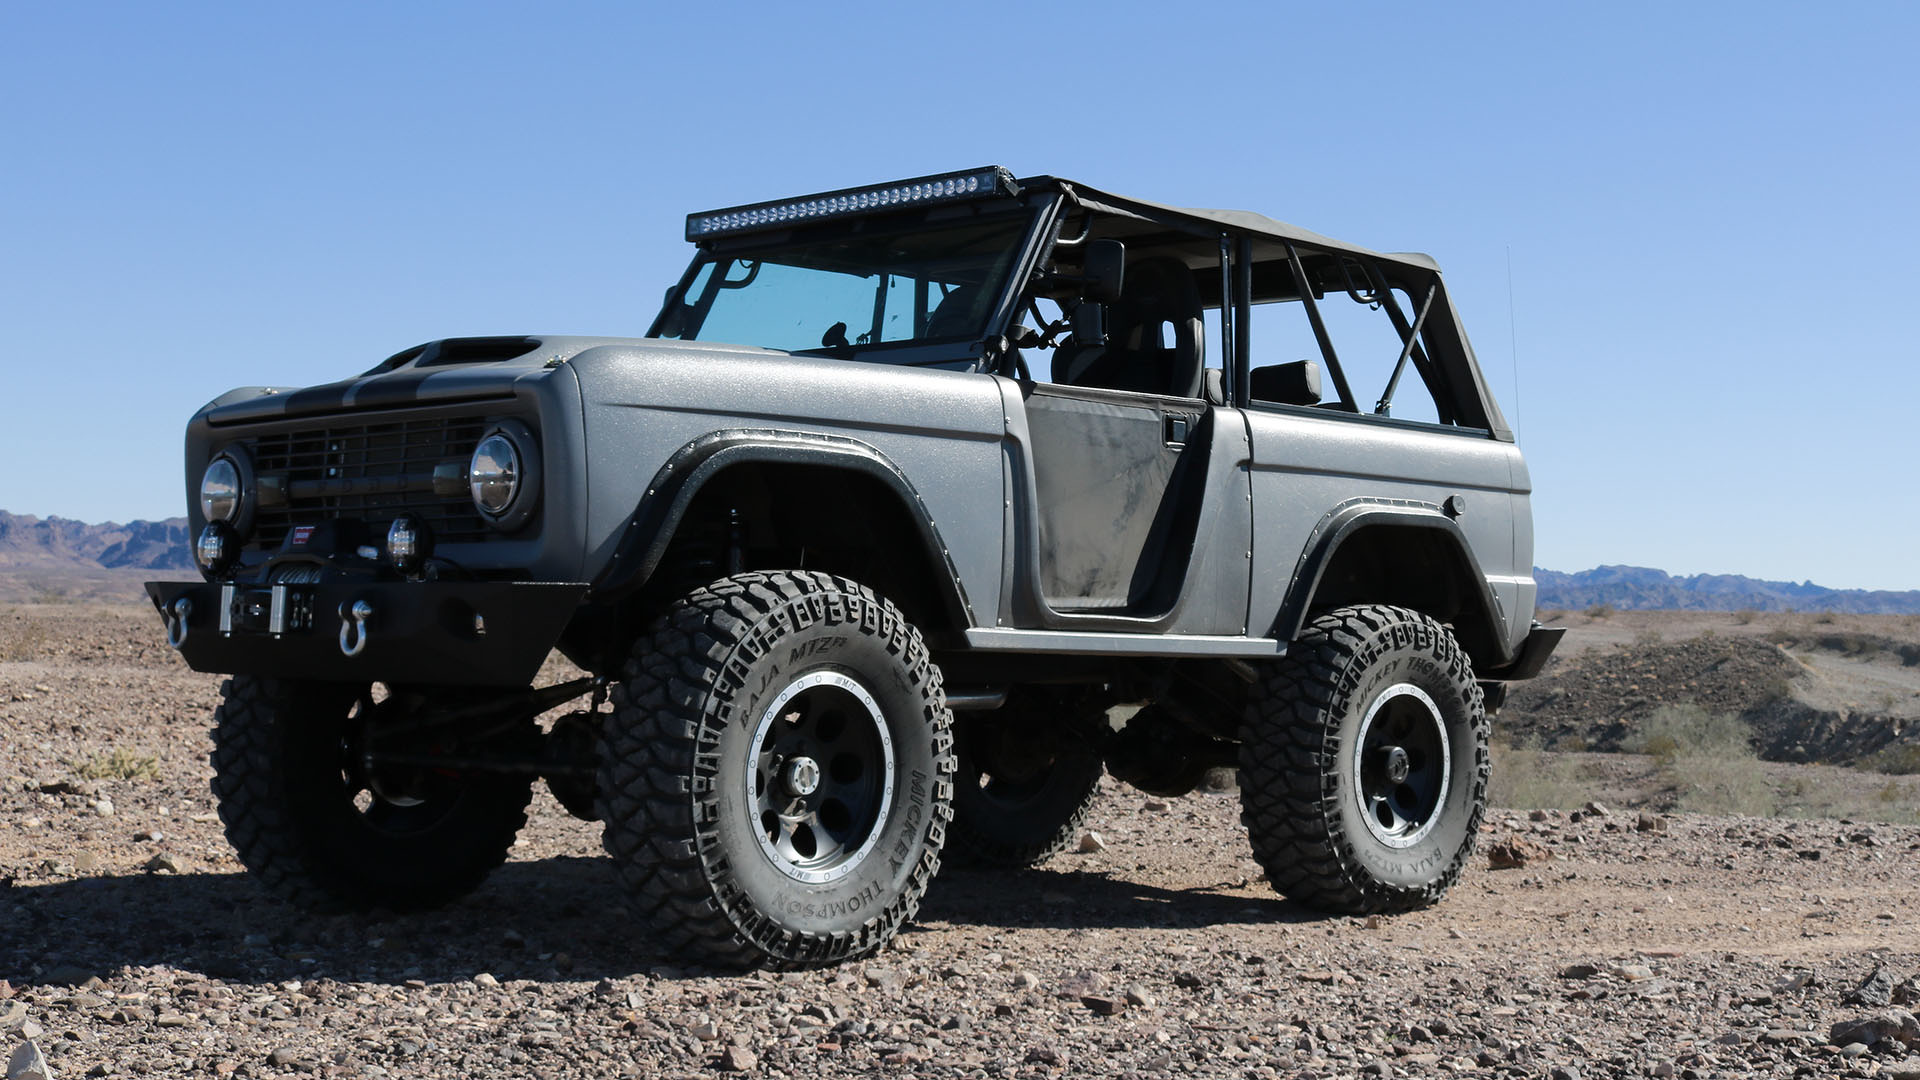 Ford Bronco by Zero to 60 Designs (1)